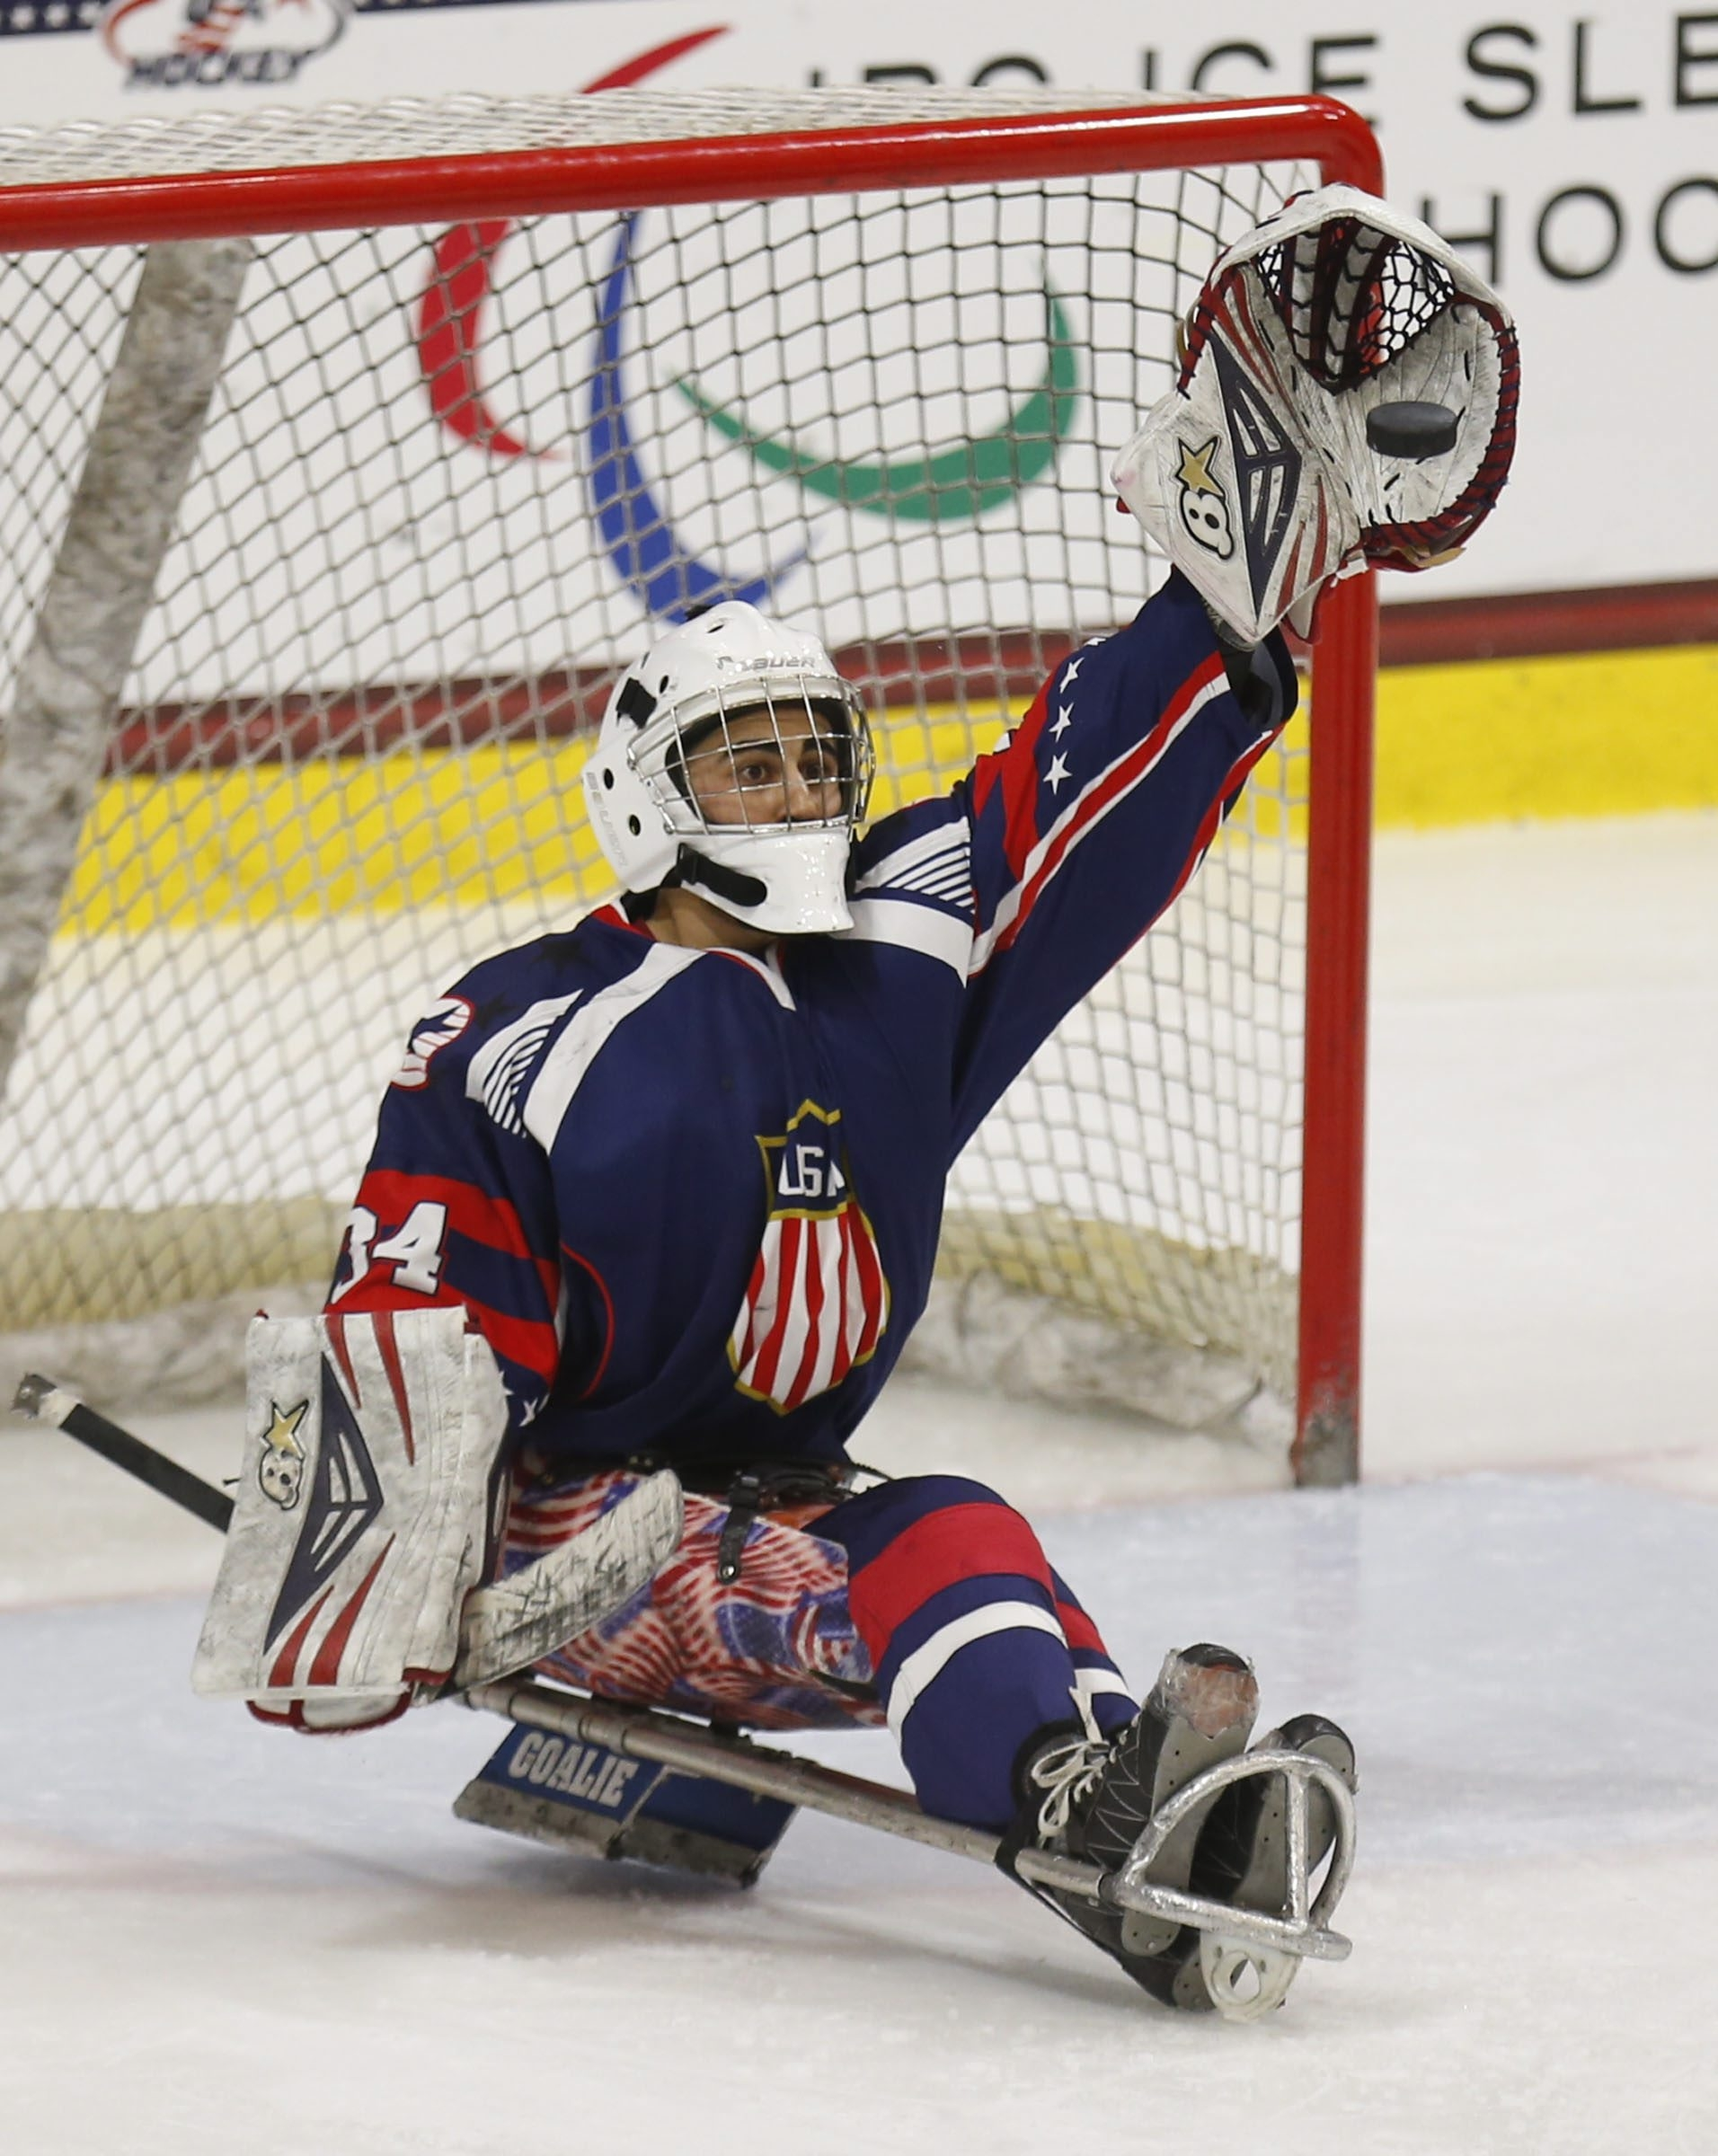 Veteran USA goaltender Steve Cash makes a save during the third period at HarborCenter on Sunday.